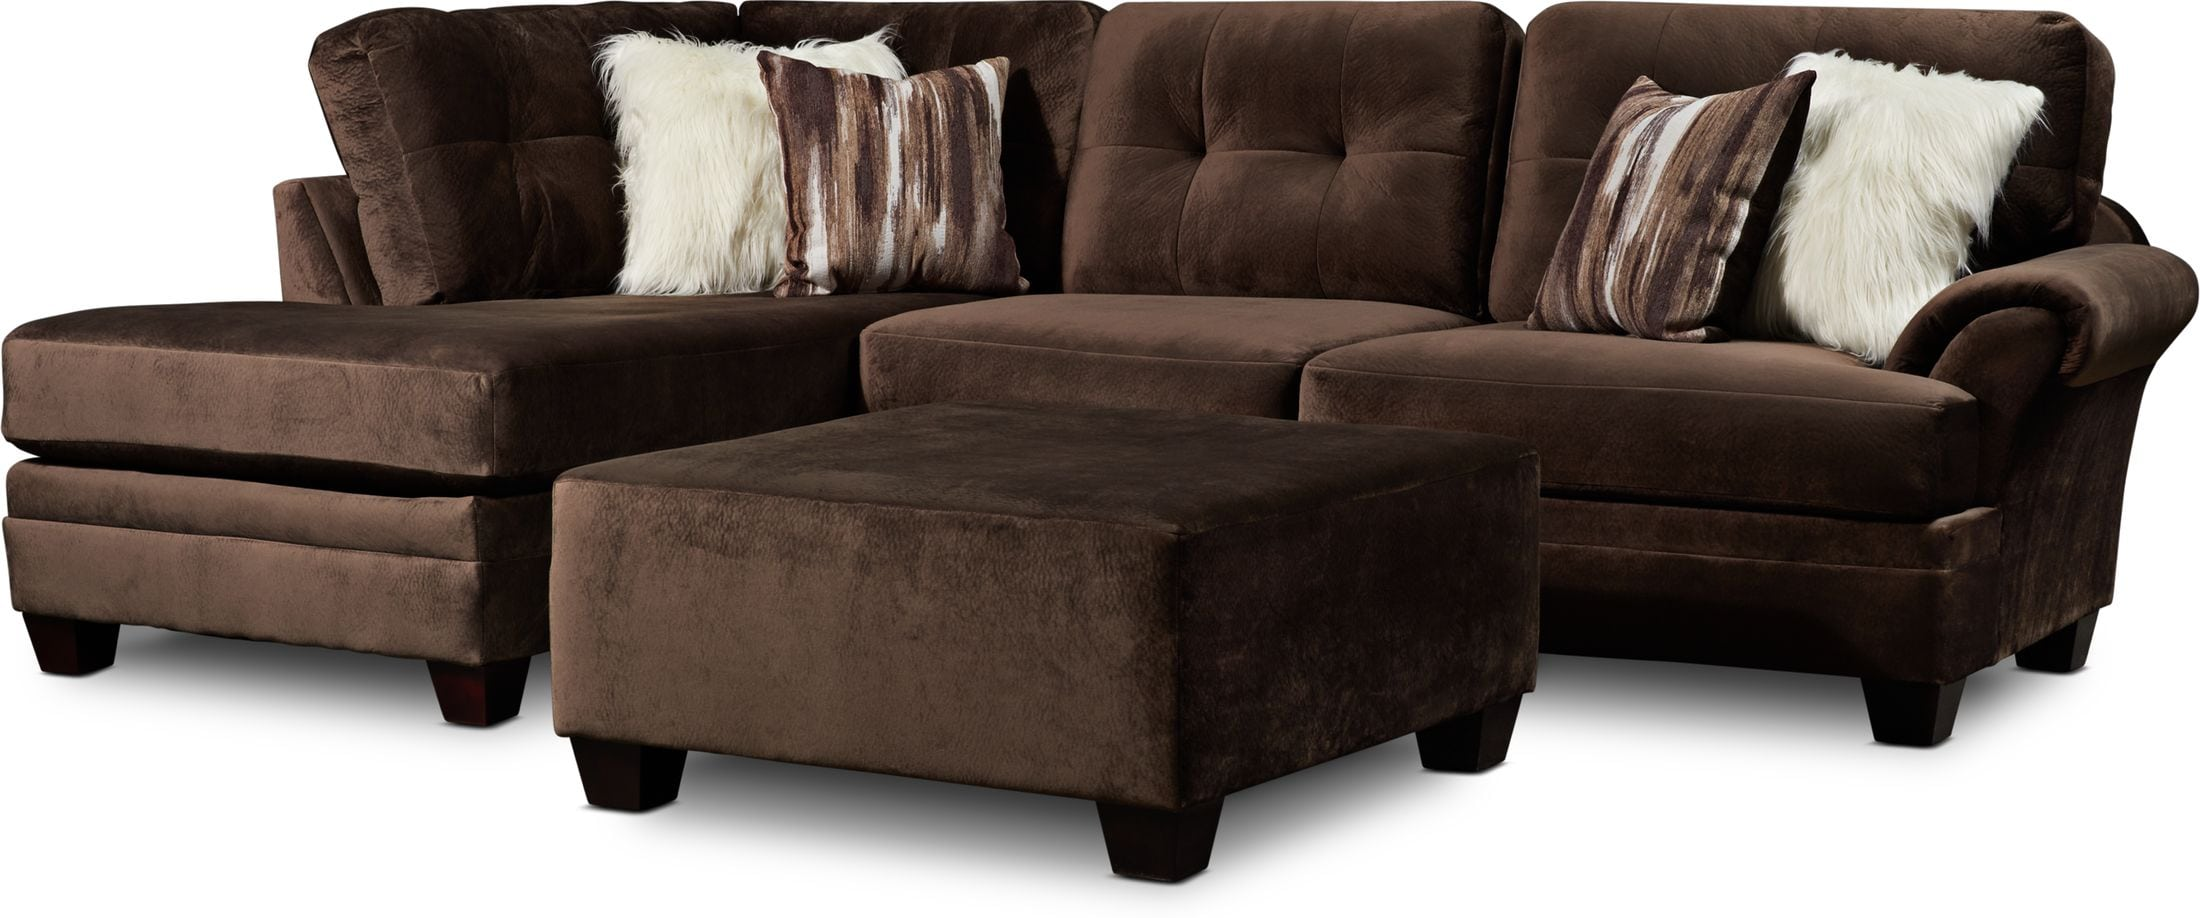 Living Room Furniture - Cordelle 2-Piece Sectional with Chaise and Ottoman